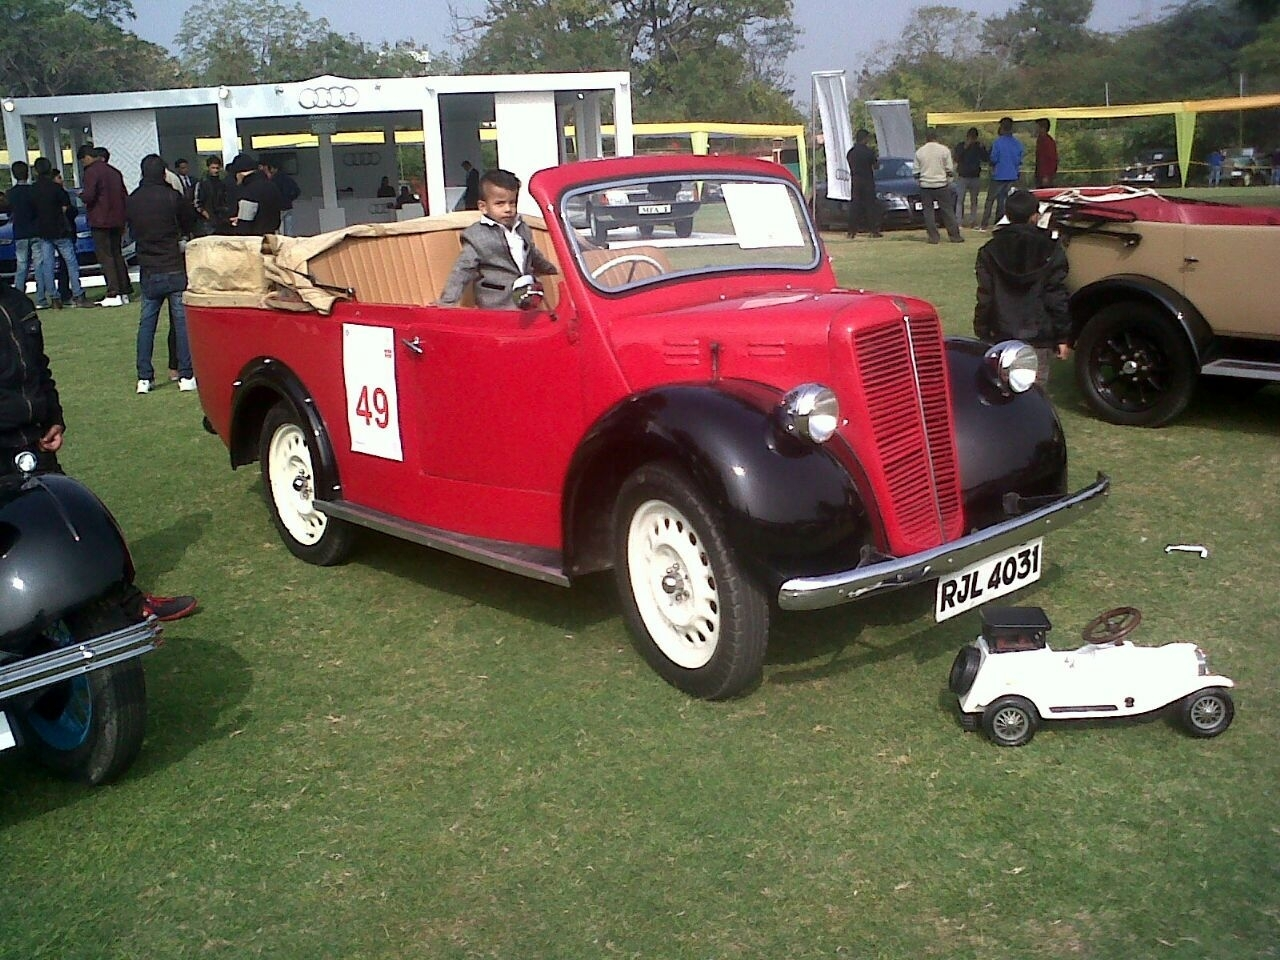 Hire Luxury Vintage Cars in Jaipur for Wedding Event